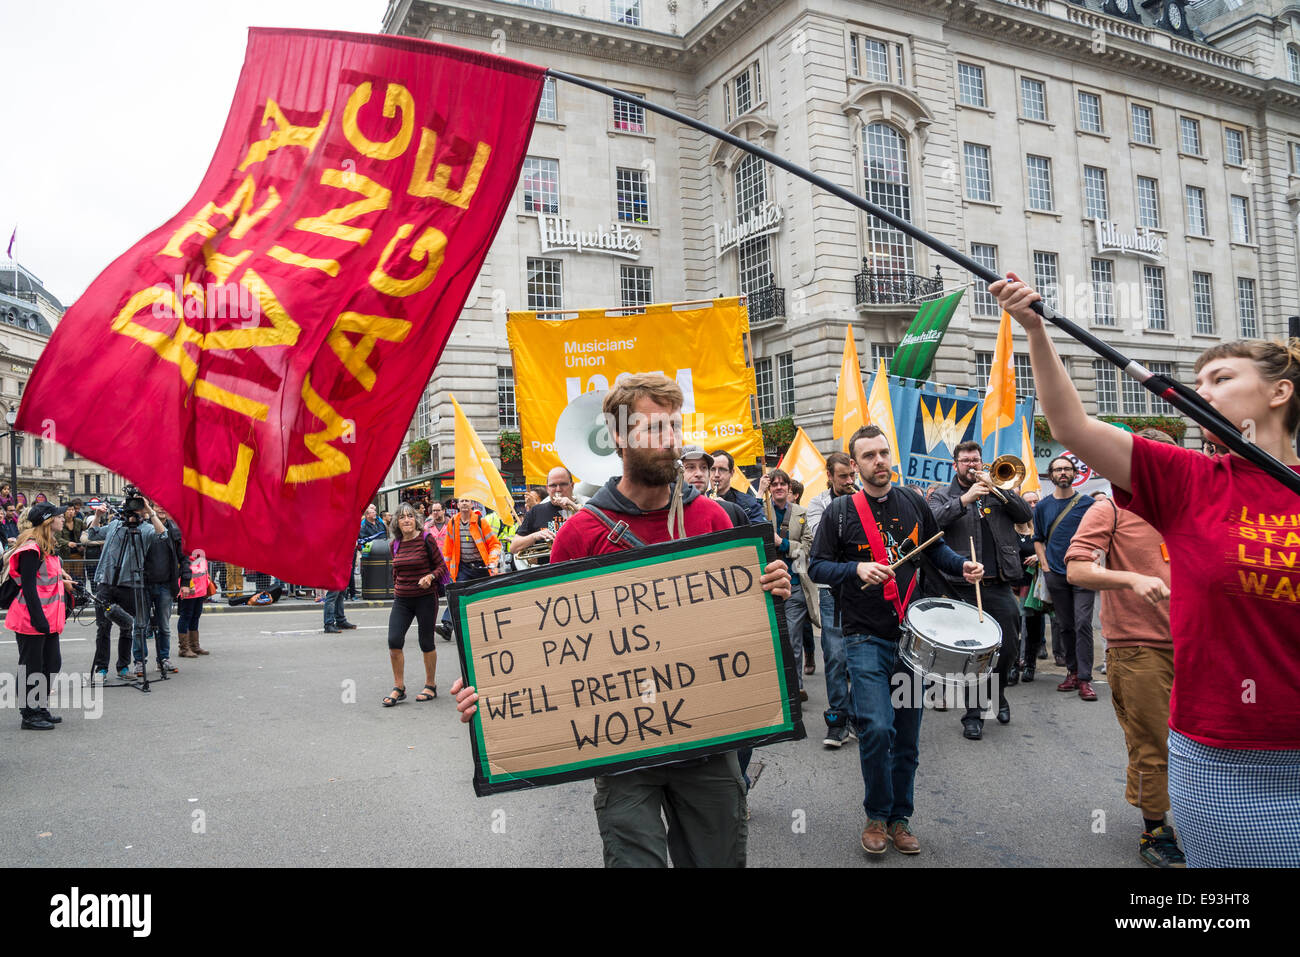 Man carrying hand-made placard 'If you pretend to pay us, we'll pretend to work', 2014. Britain Needs - Stock Image